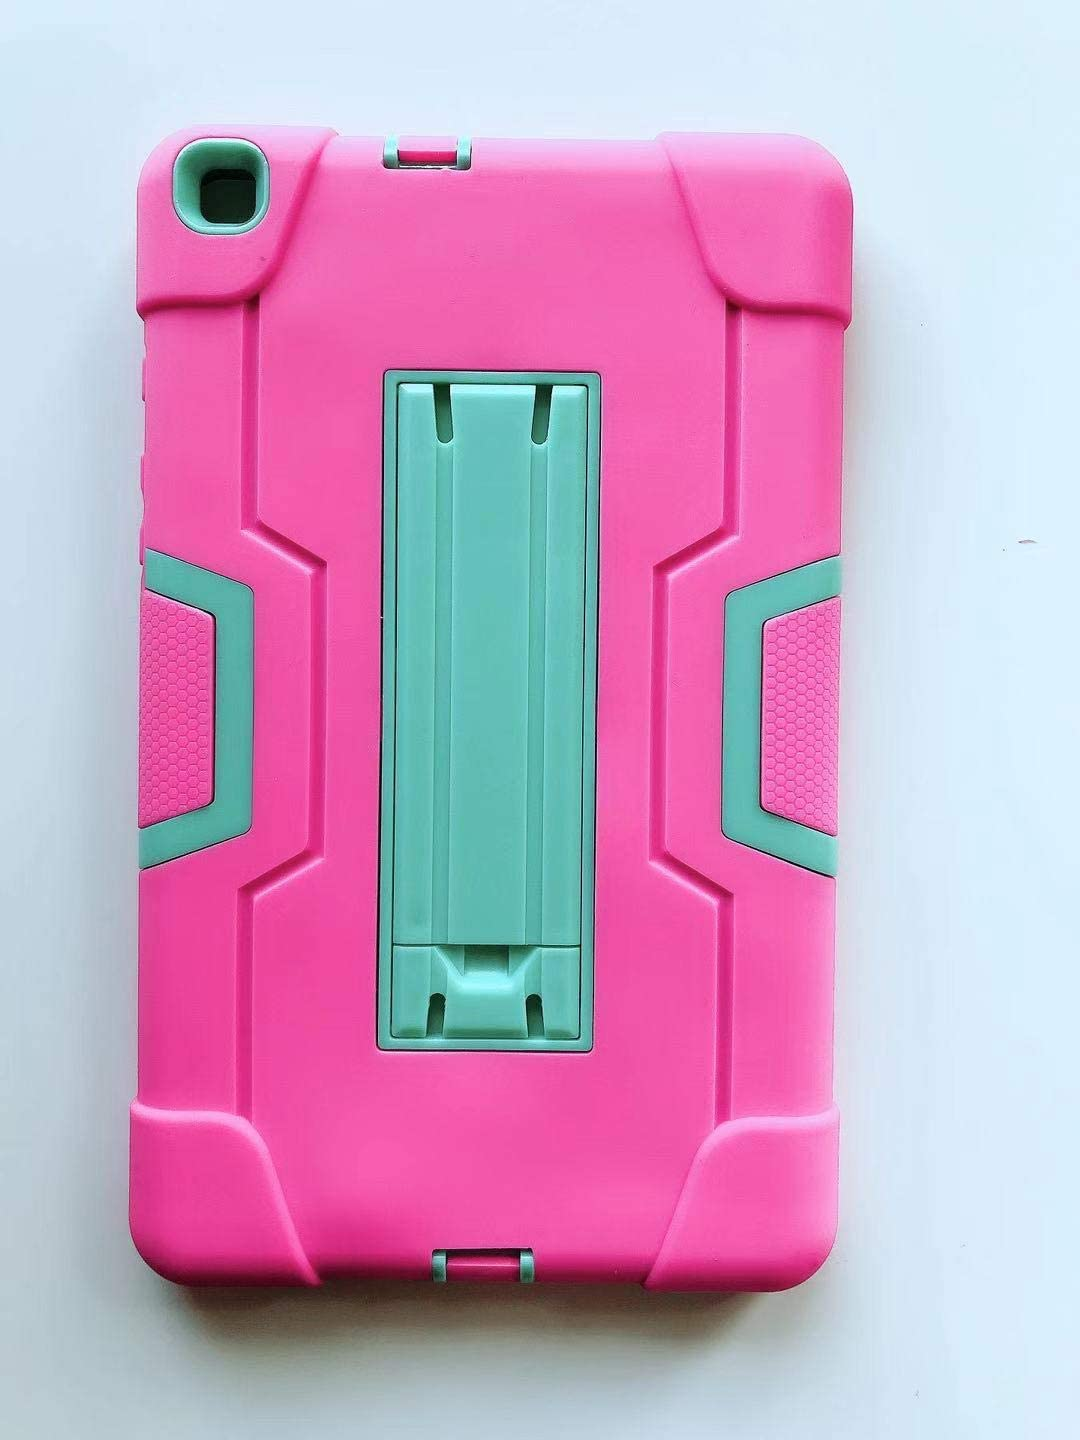 Golden Sheeps Compatible for Samsung Galaxy Tab A 8.0 2019 Model SM-T290 /SM-T295 Impact Hybrid Drop Proof Armor Defender Full-Body Protection Case Convertible Built in Stand (Pink Teal)